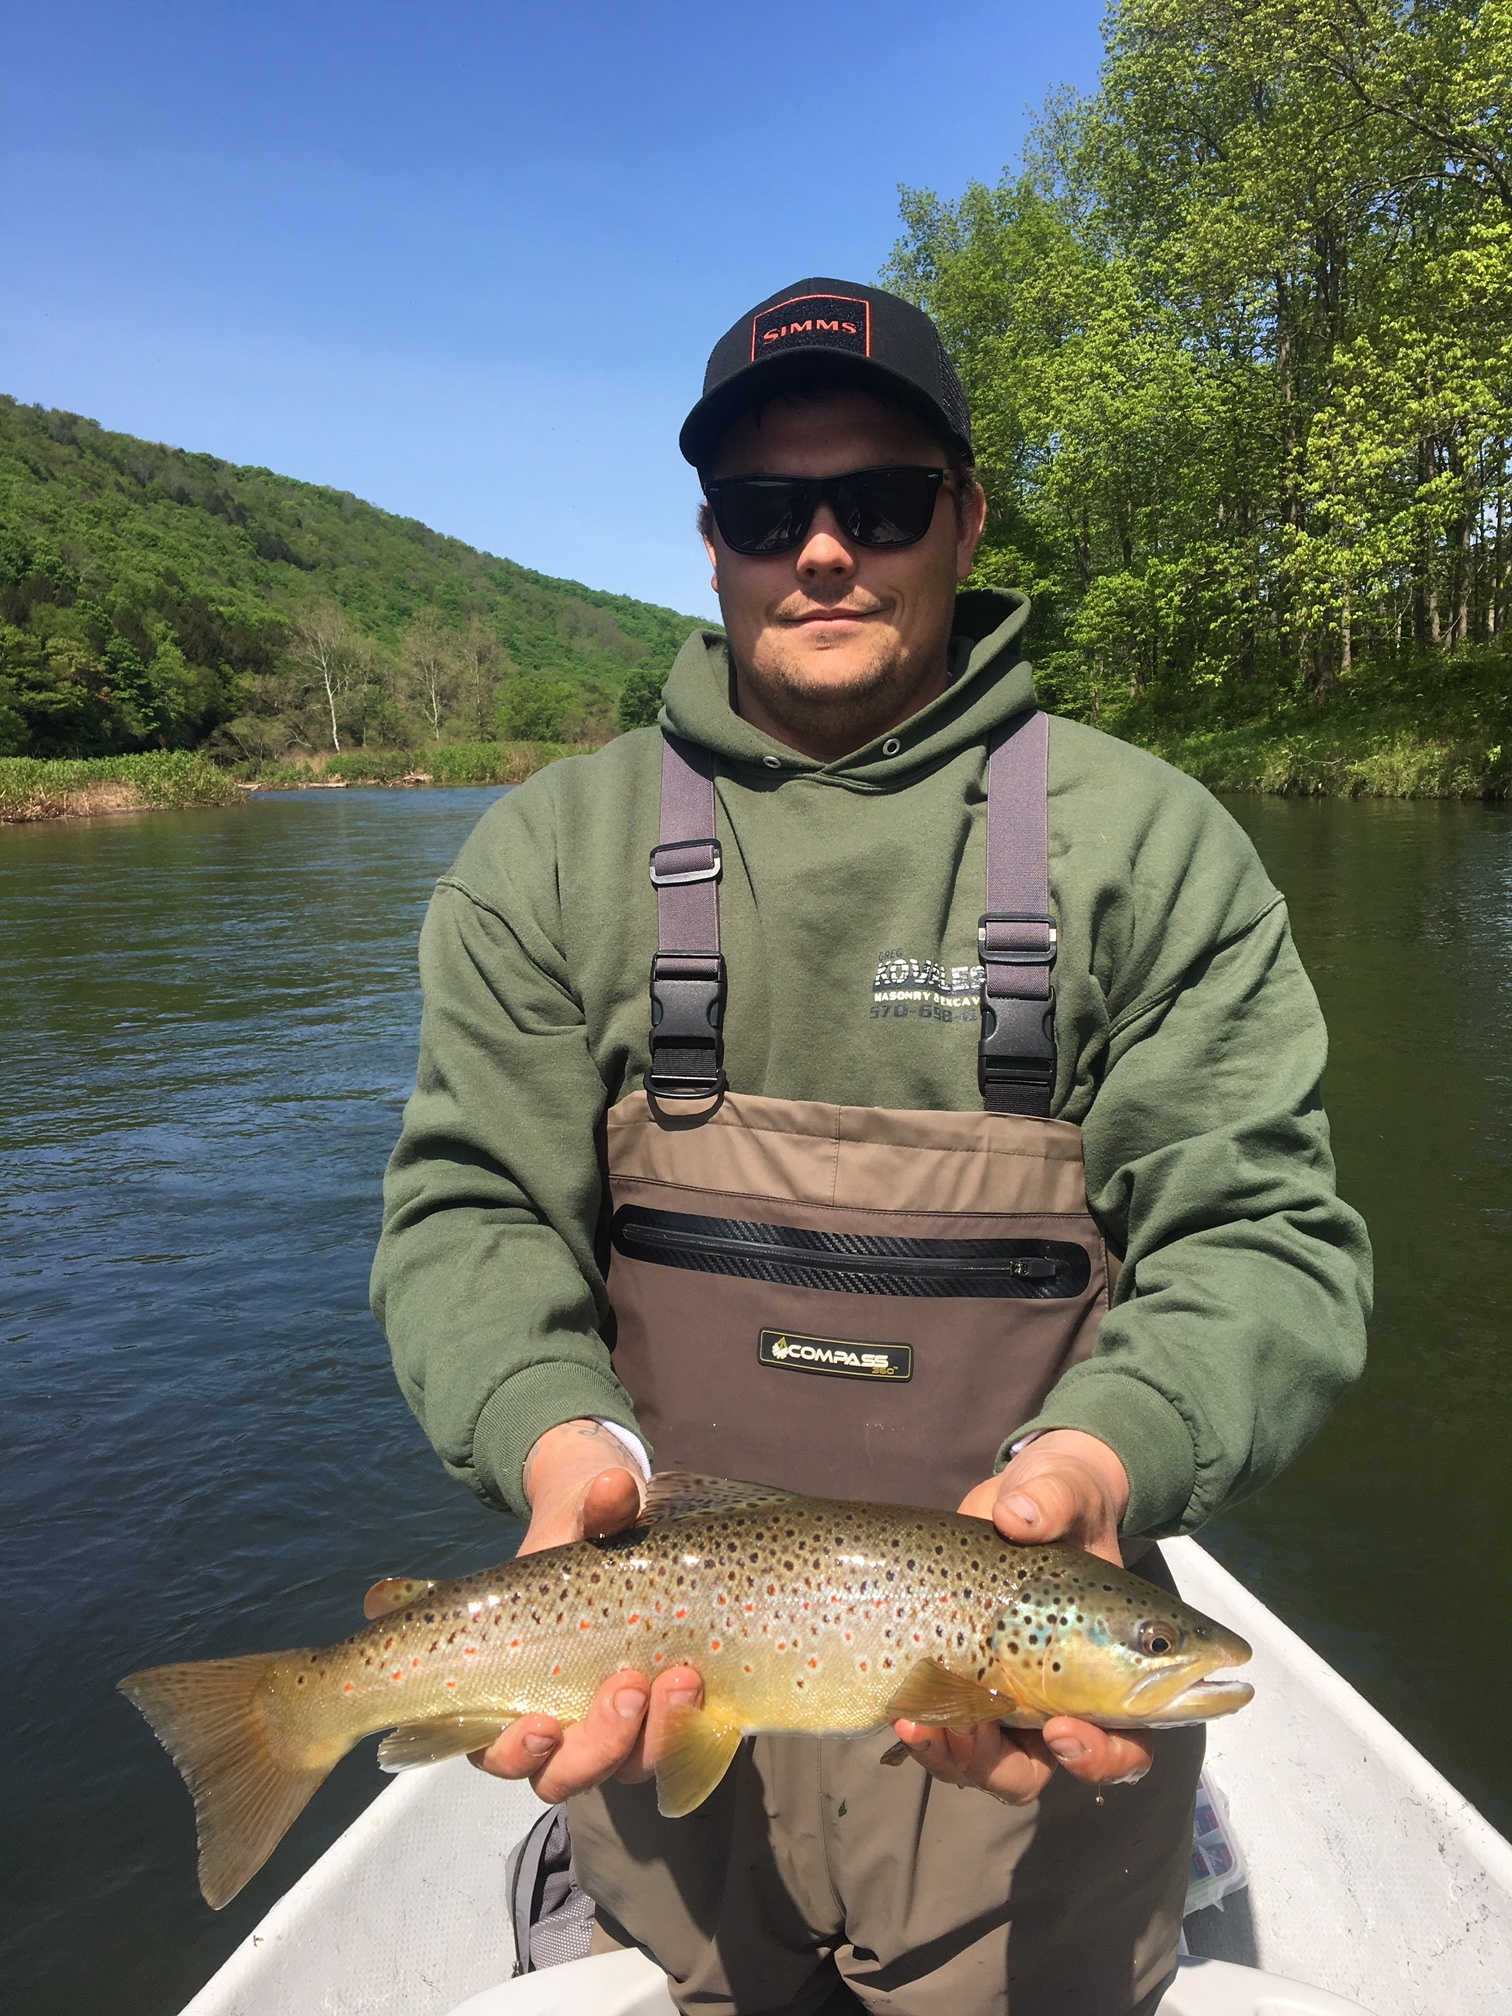 Matt K. with a gorgeous Brown trout